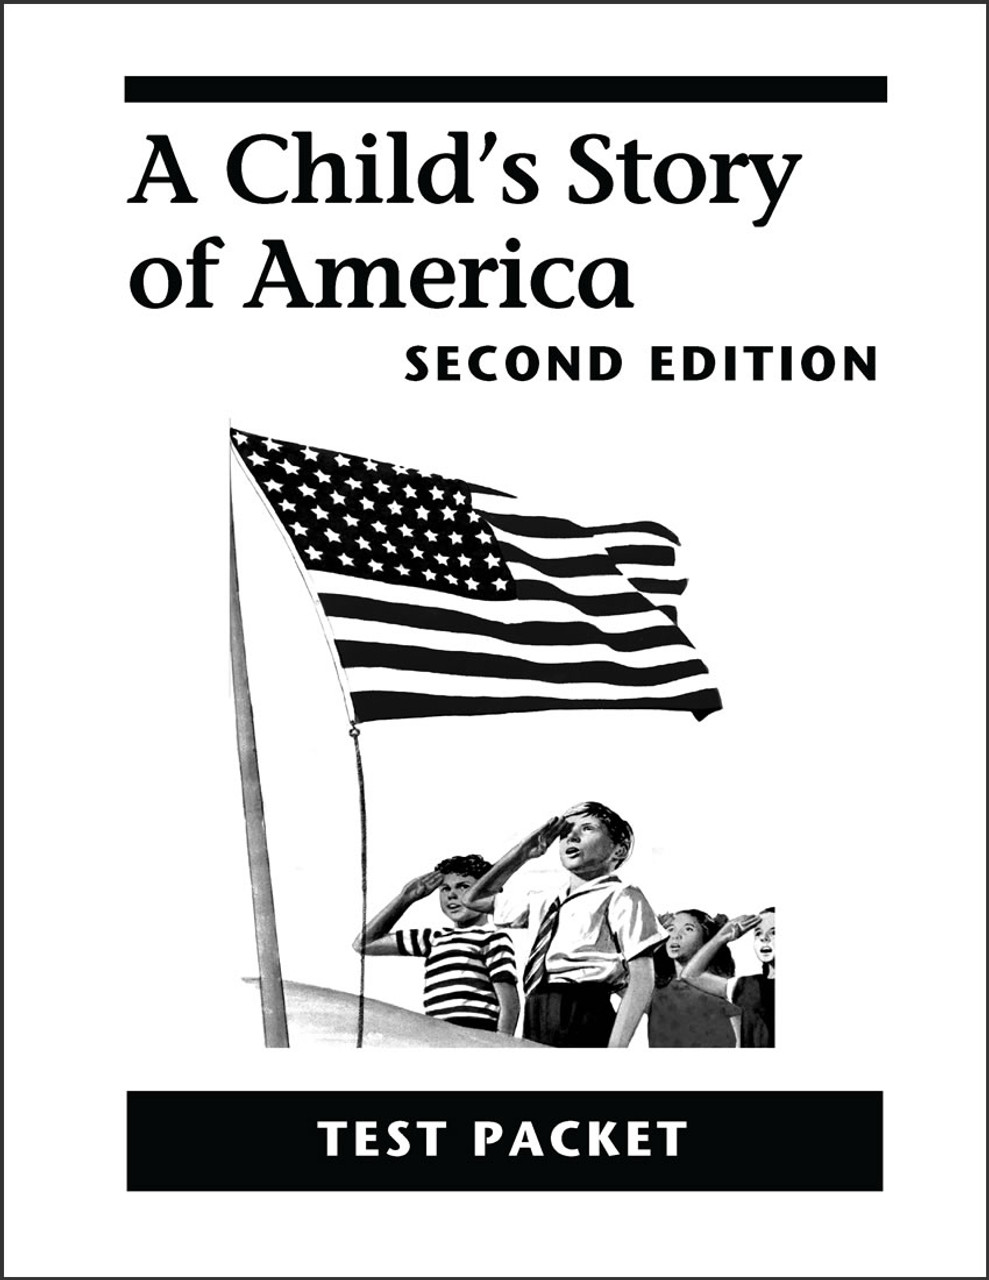 A Child's Story of America, 2nd edition - Test Packet